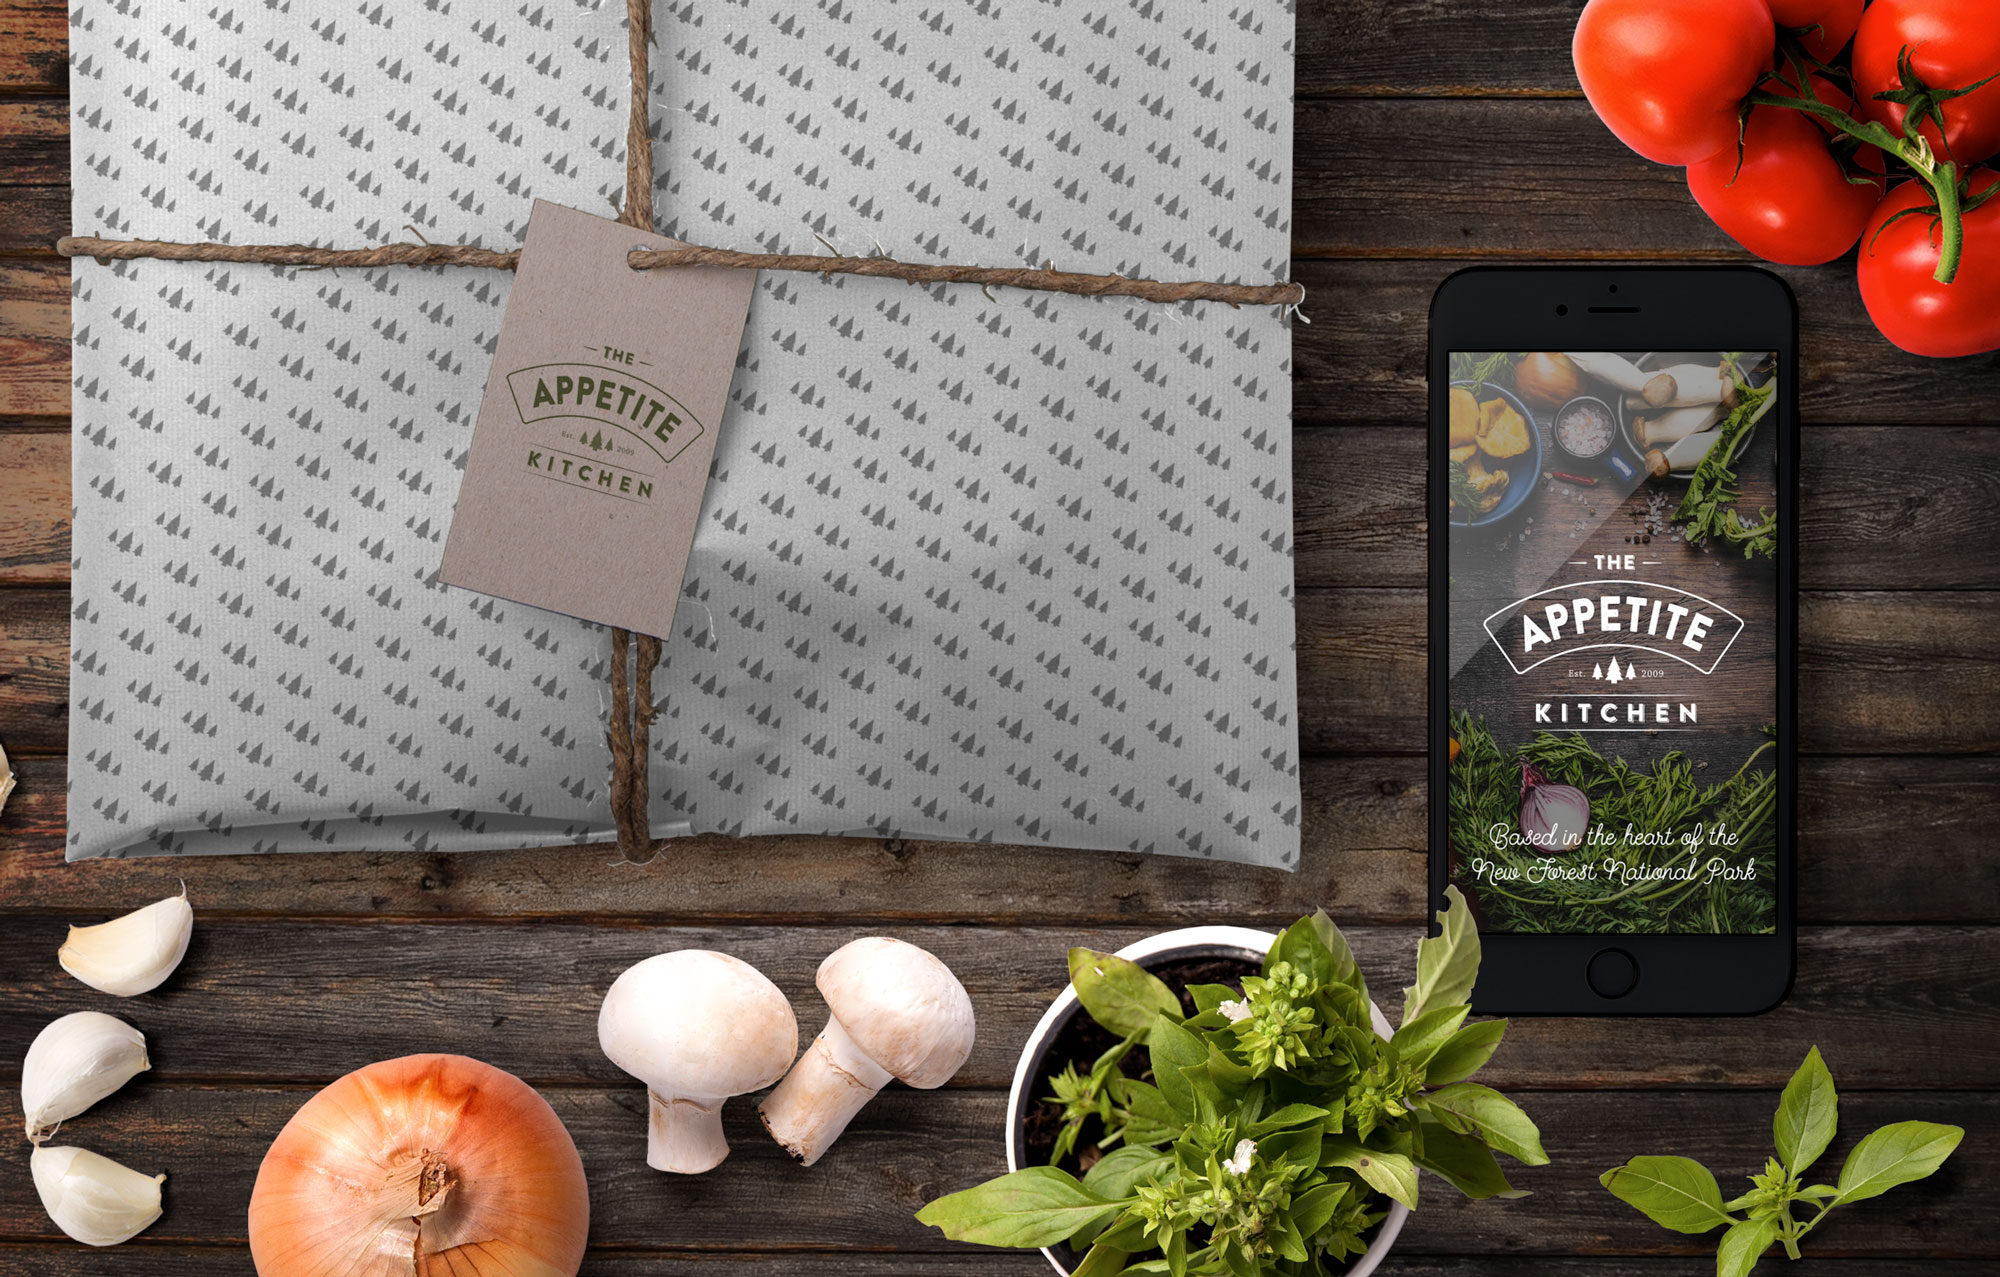 The Appetite Kitchen packaging mockup